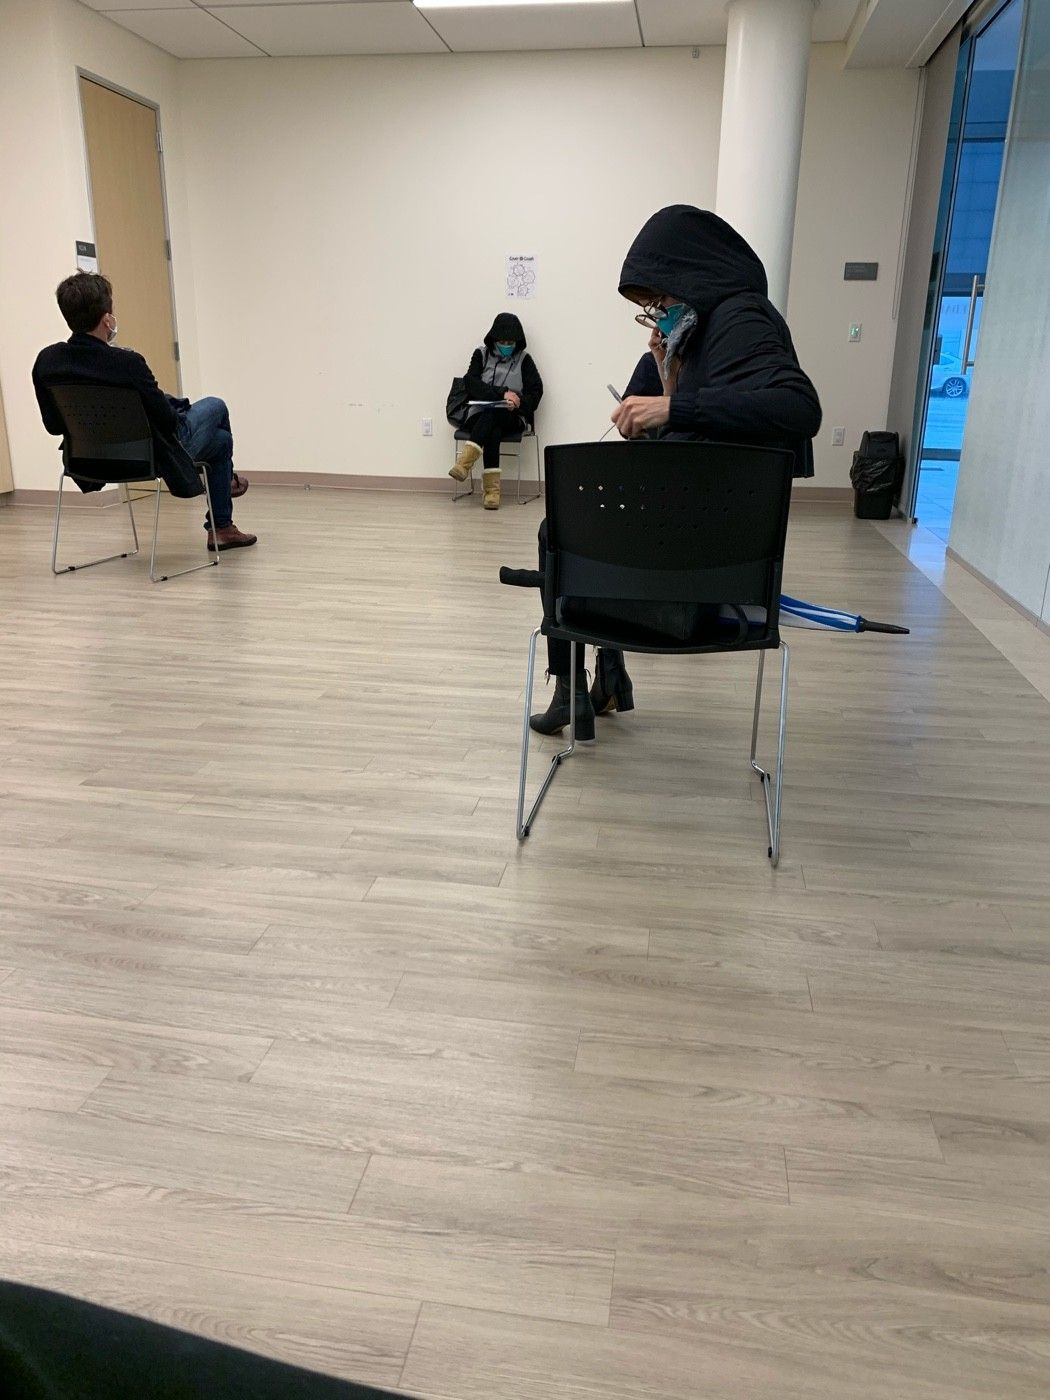 The waiting room to get tested